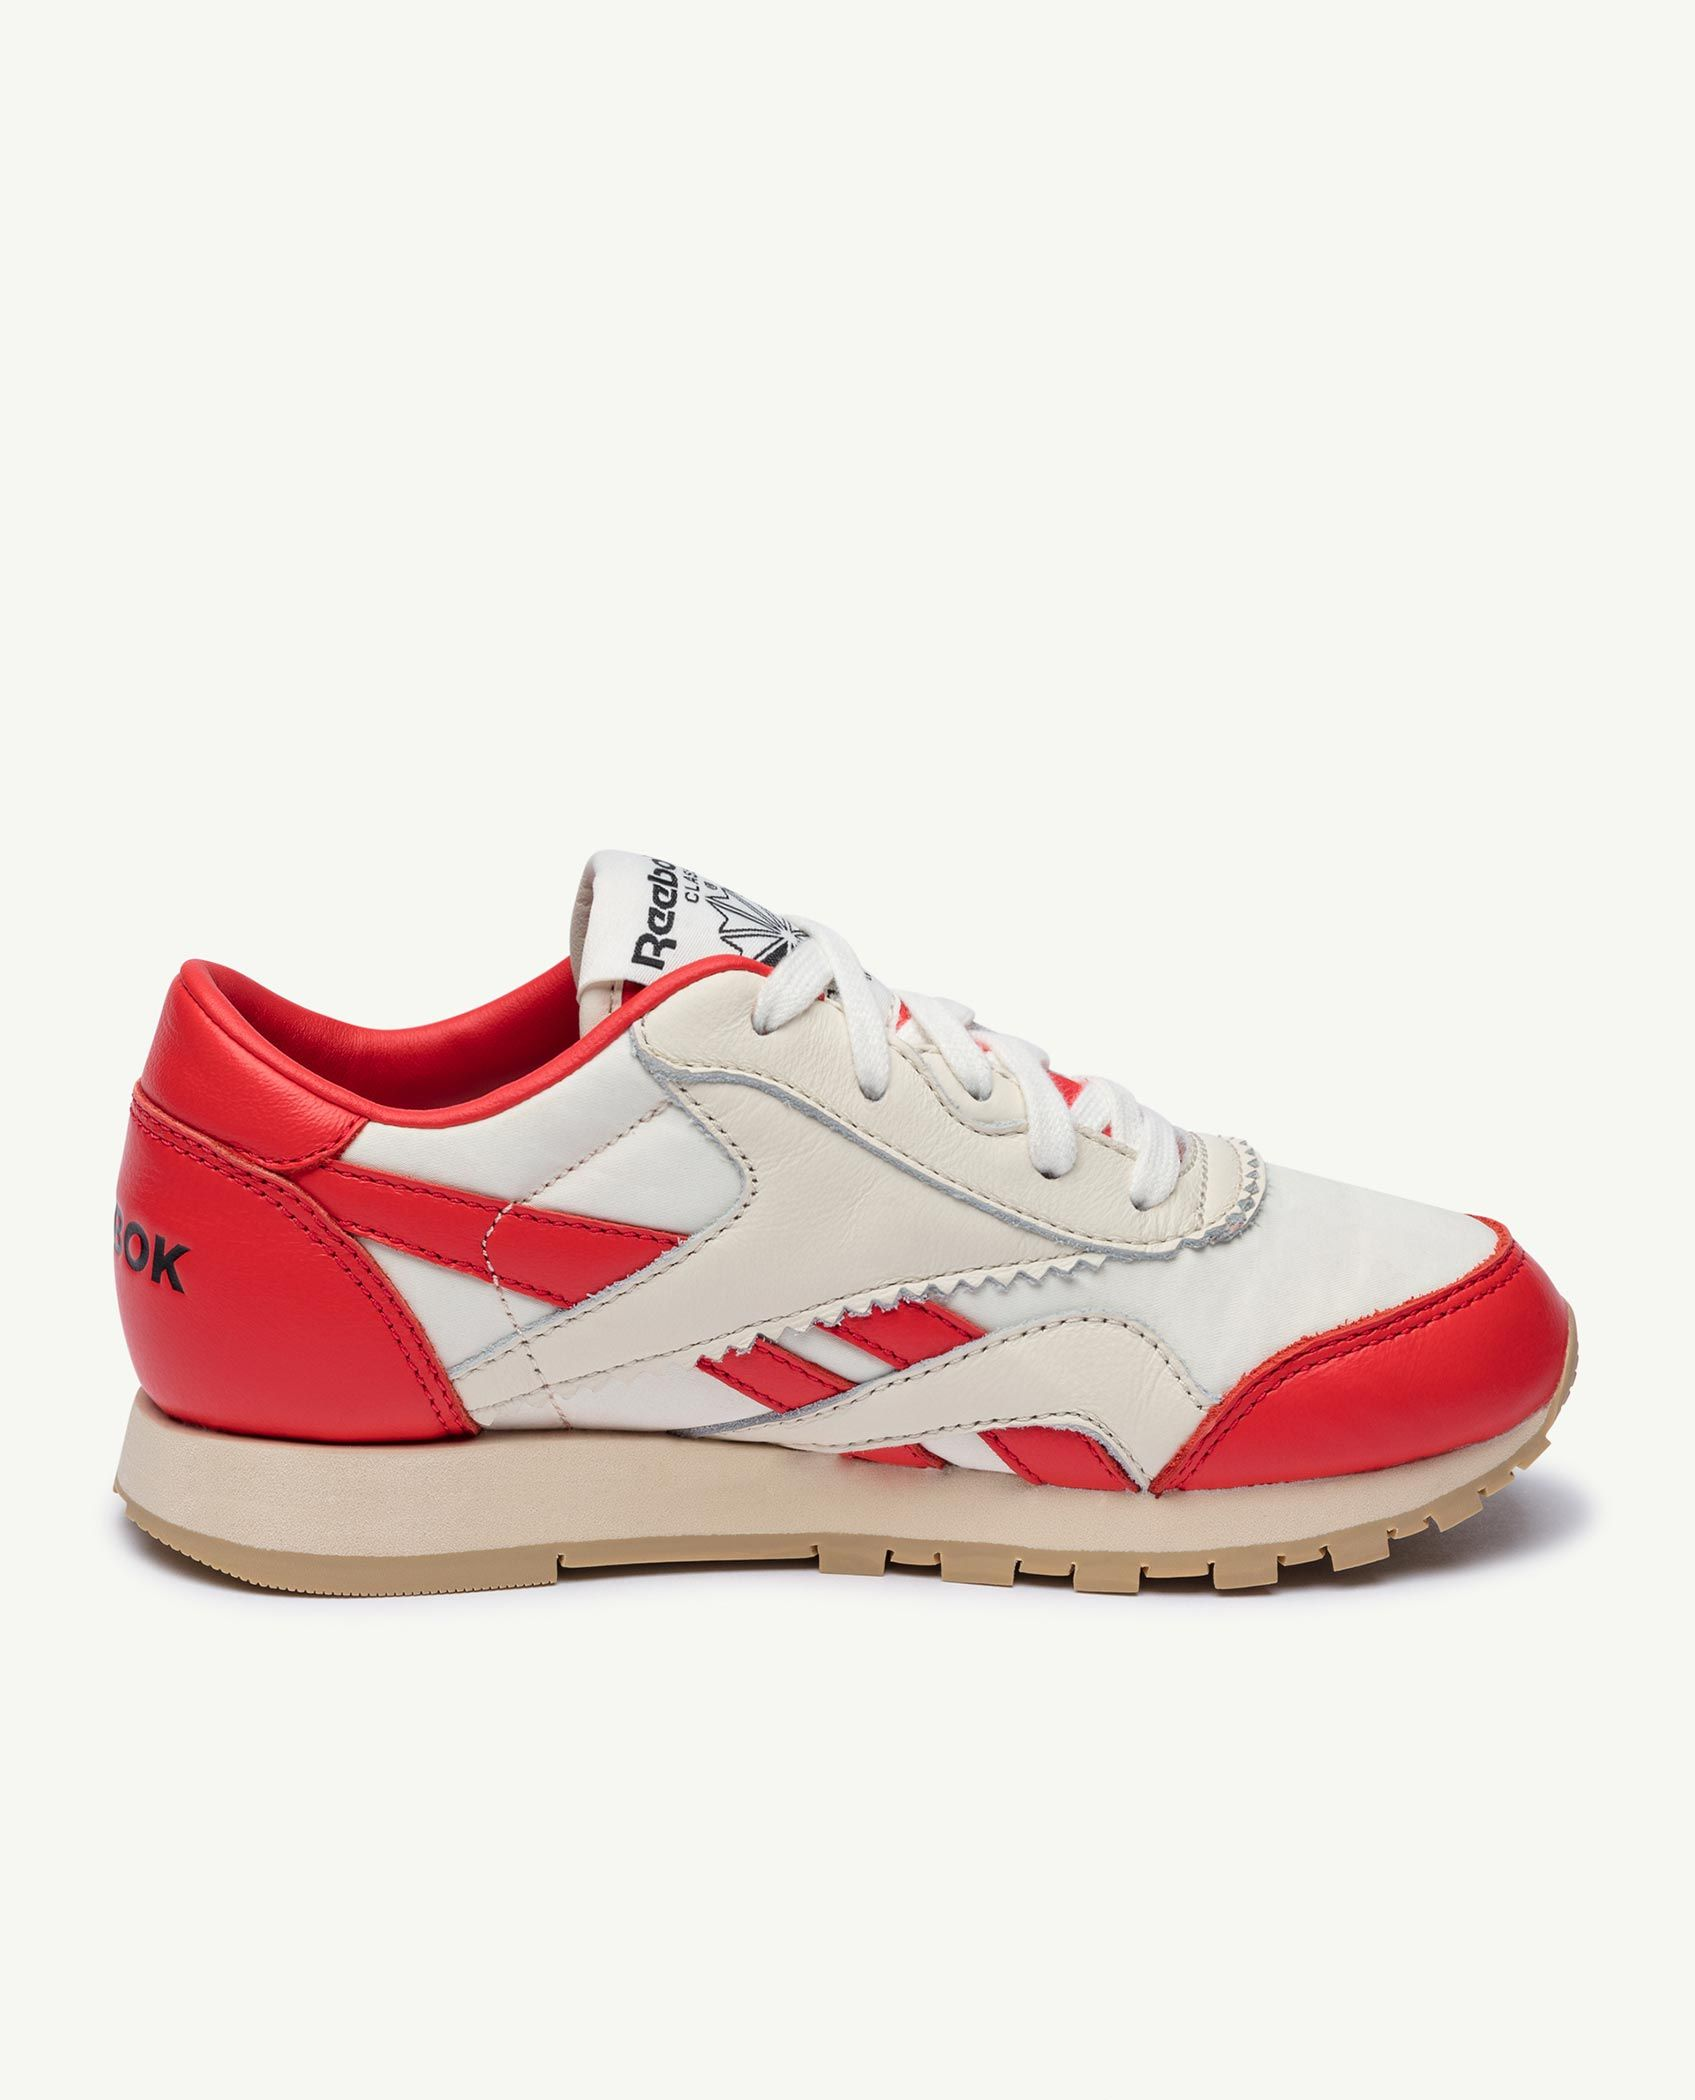 Reebok x The Animals Observatory Classic Nylon Red Kid img-2